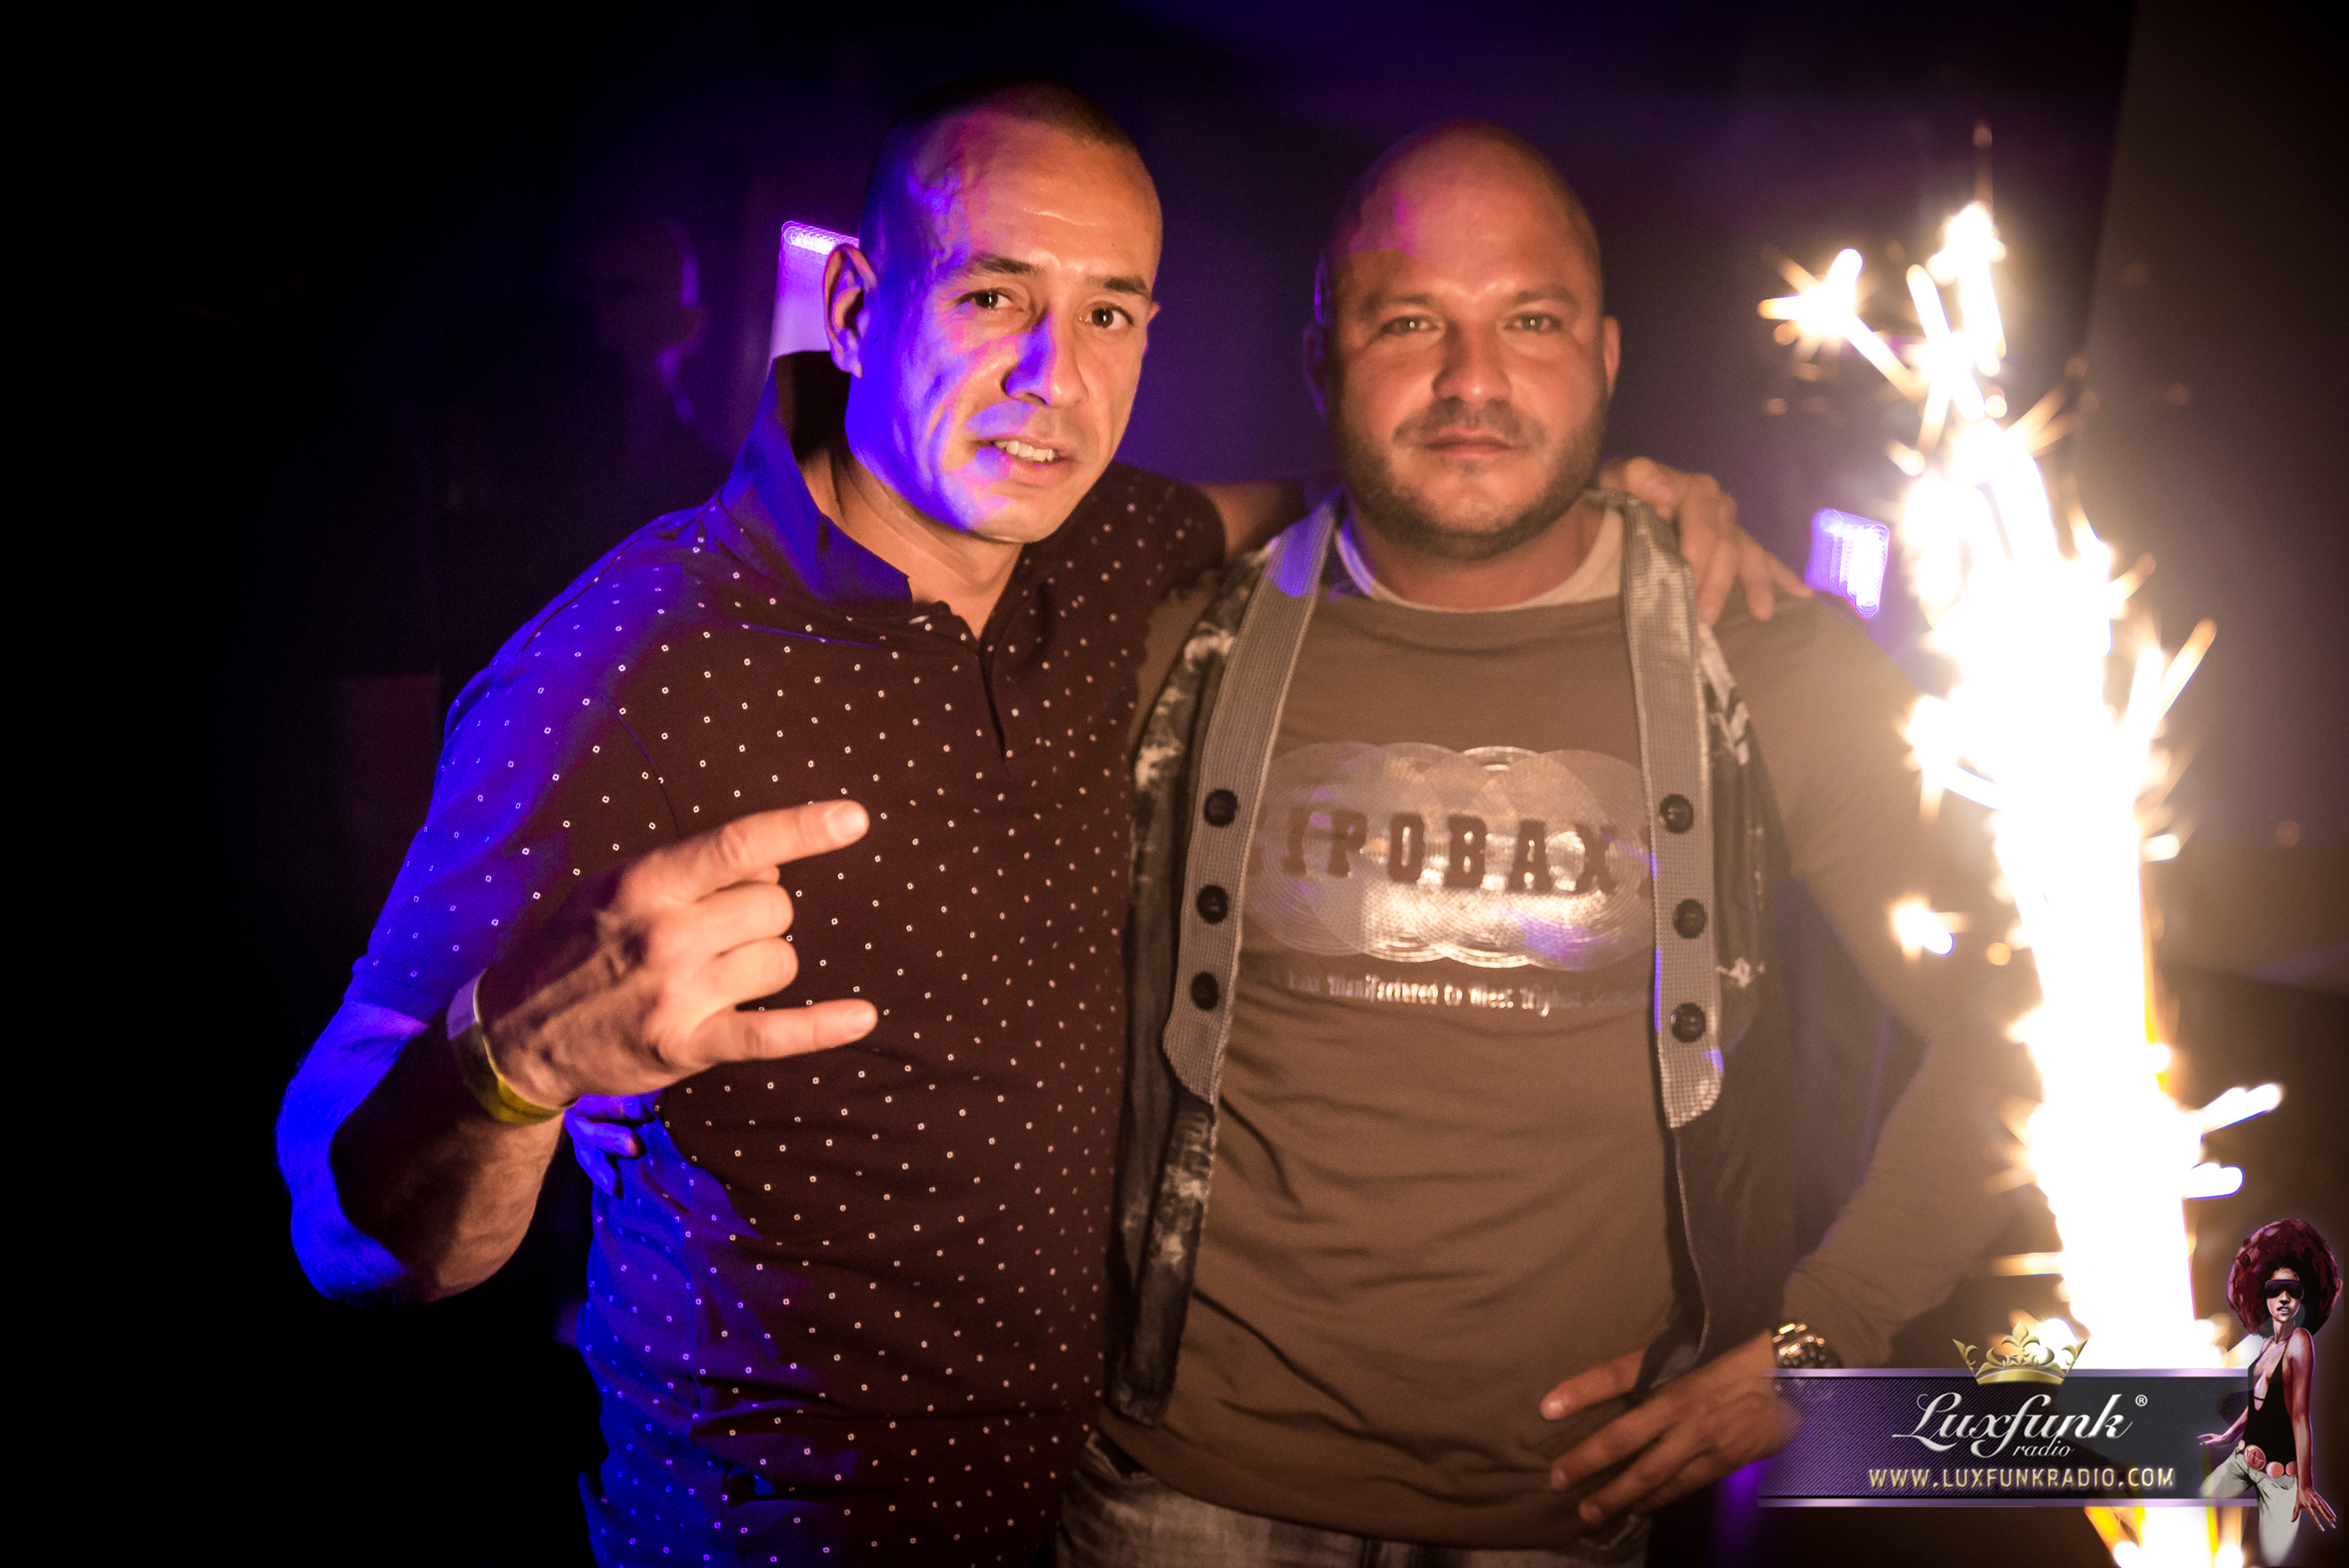 luxfunk-radio-funky-party-20191108-lock-budapest-1174